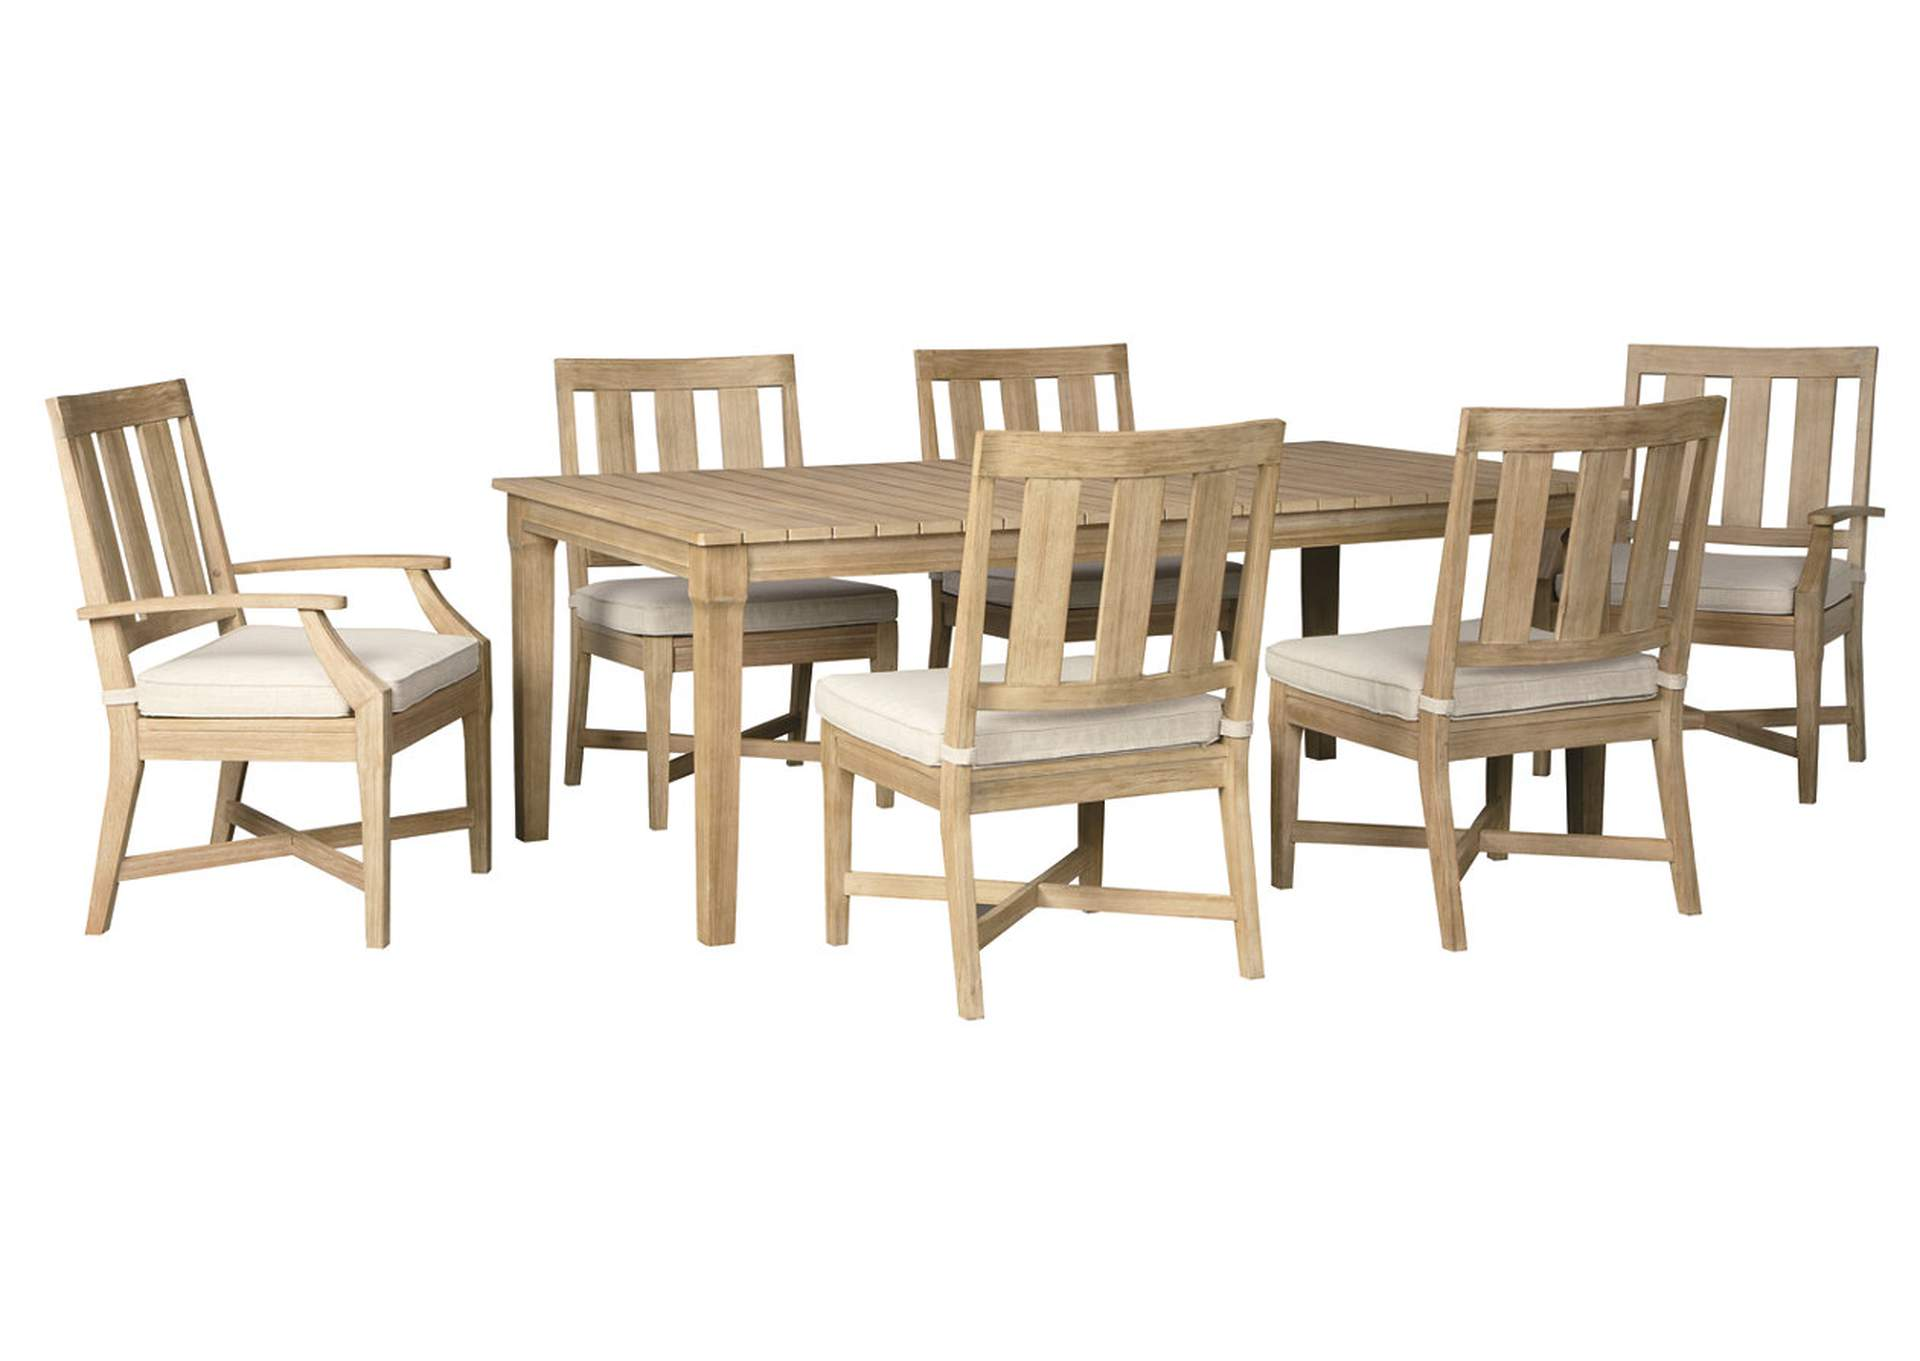 Clare View Beige Dining Table w/Umbrella Option, 4 Chair, 2 Arm Chair,Outdoor By Ashley